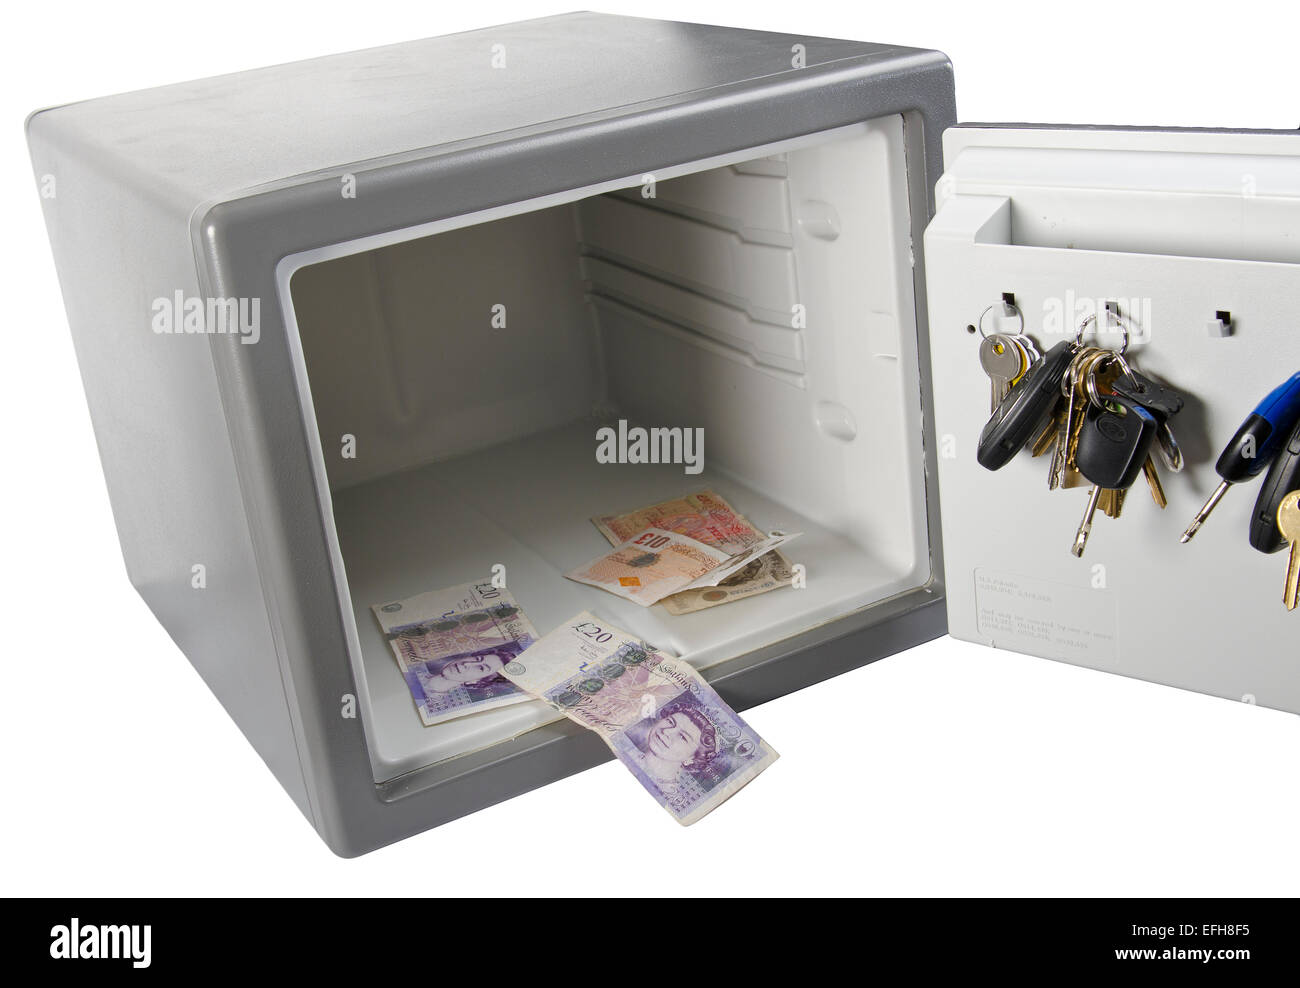 cut out image of combination domestic safe Stock Photo